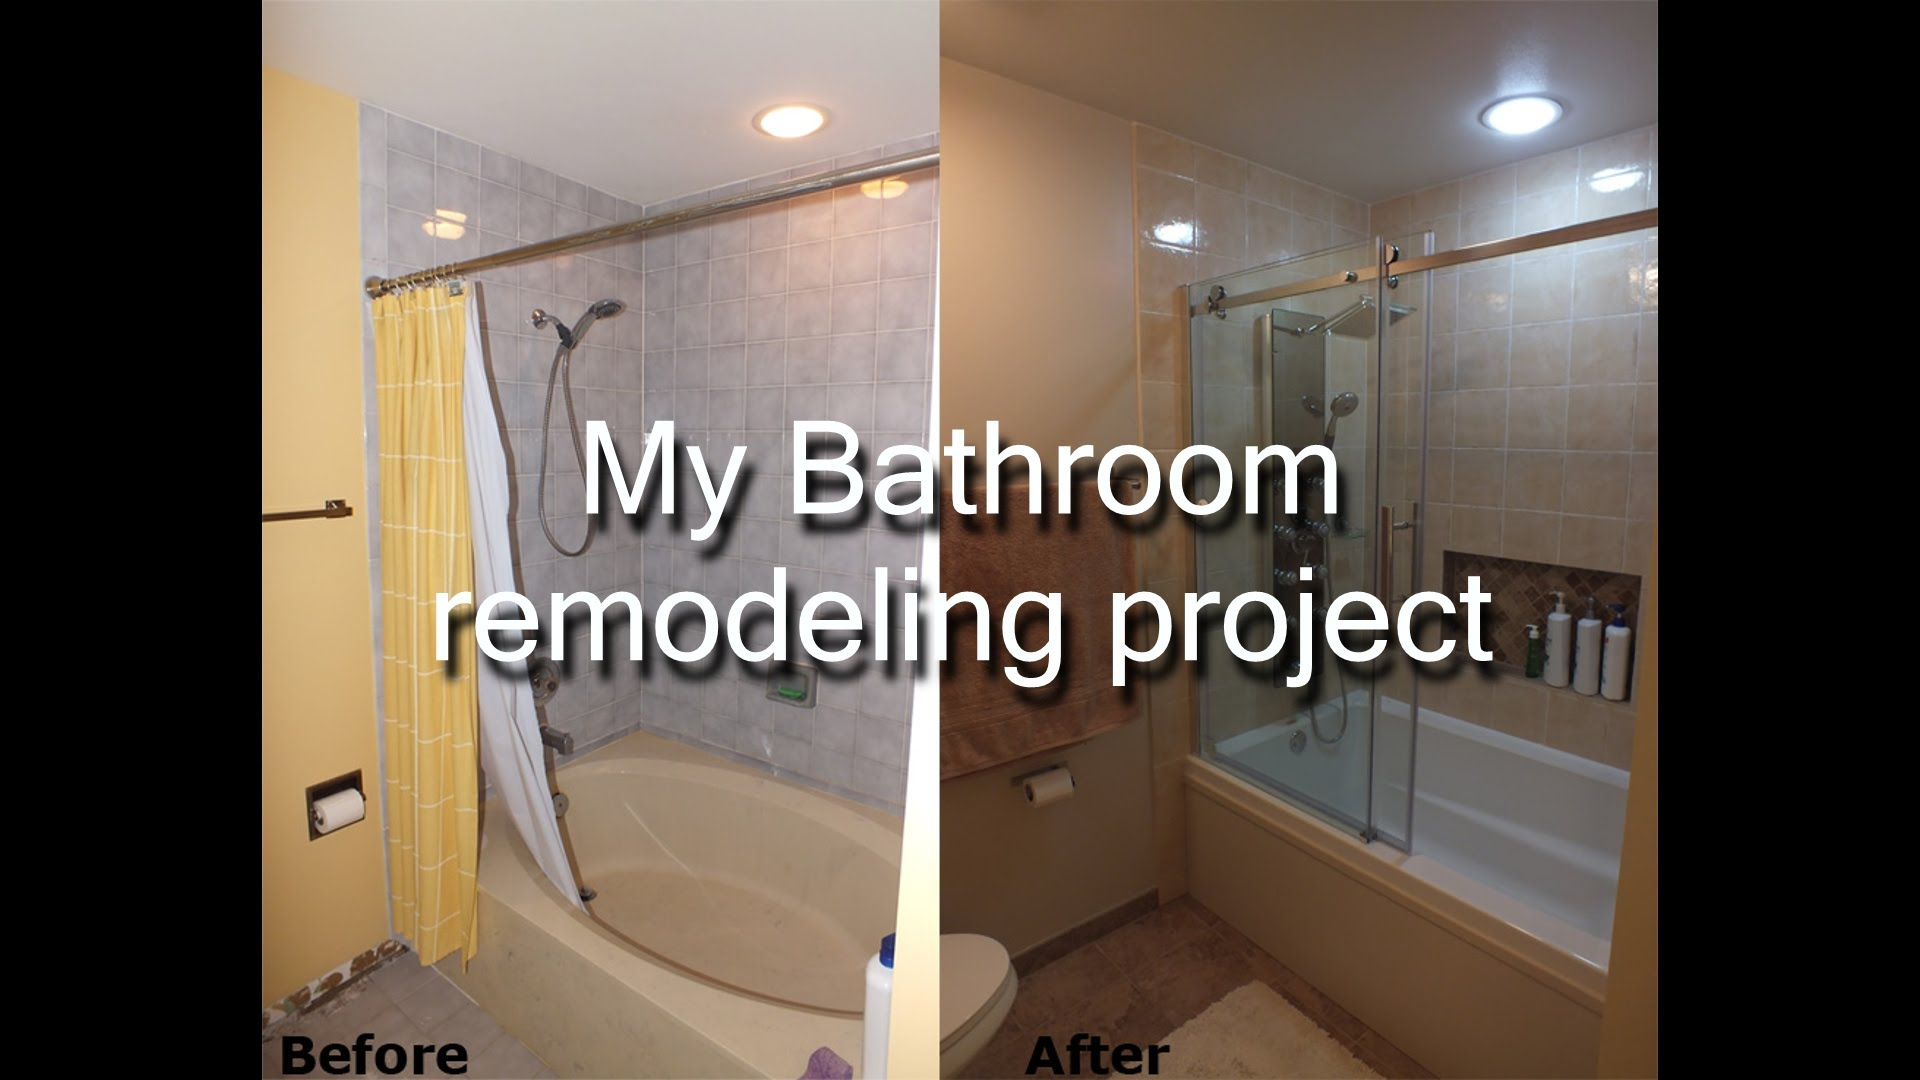 Inspirational Stepstep Diy Bathroom Remodeling Project - Youtube throughout Bathroom Remodel Diy